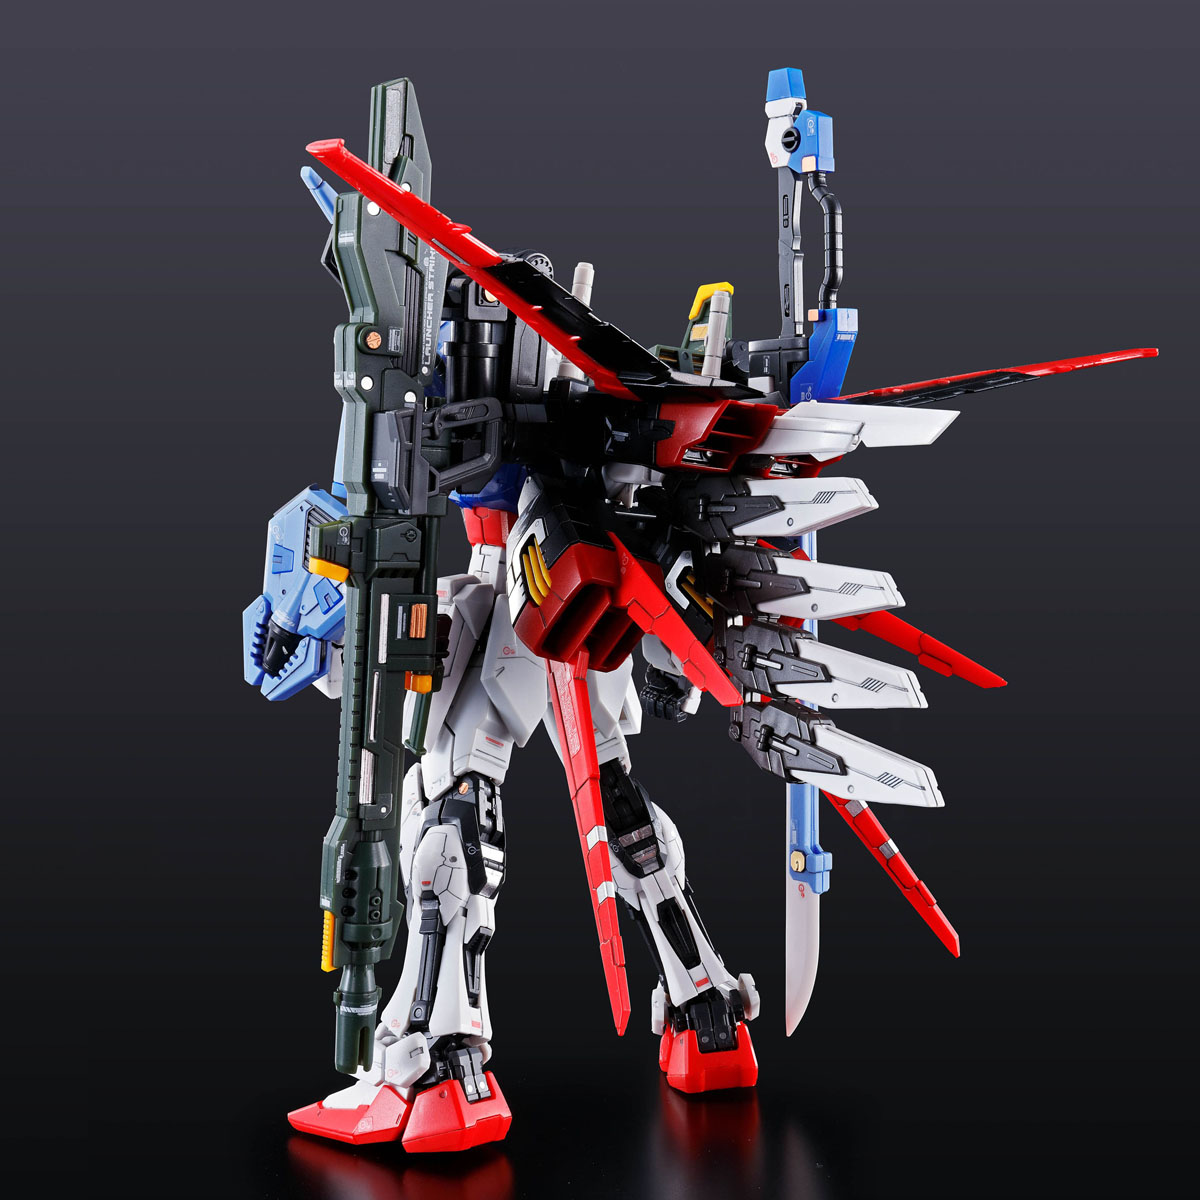 RG 1/144 PERFECT STRIKE GUNDAM [Jan 2020 Delivery]